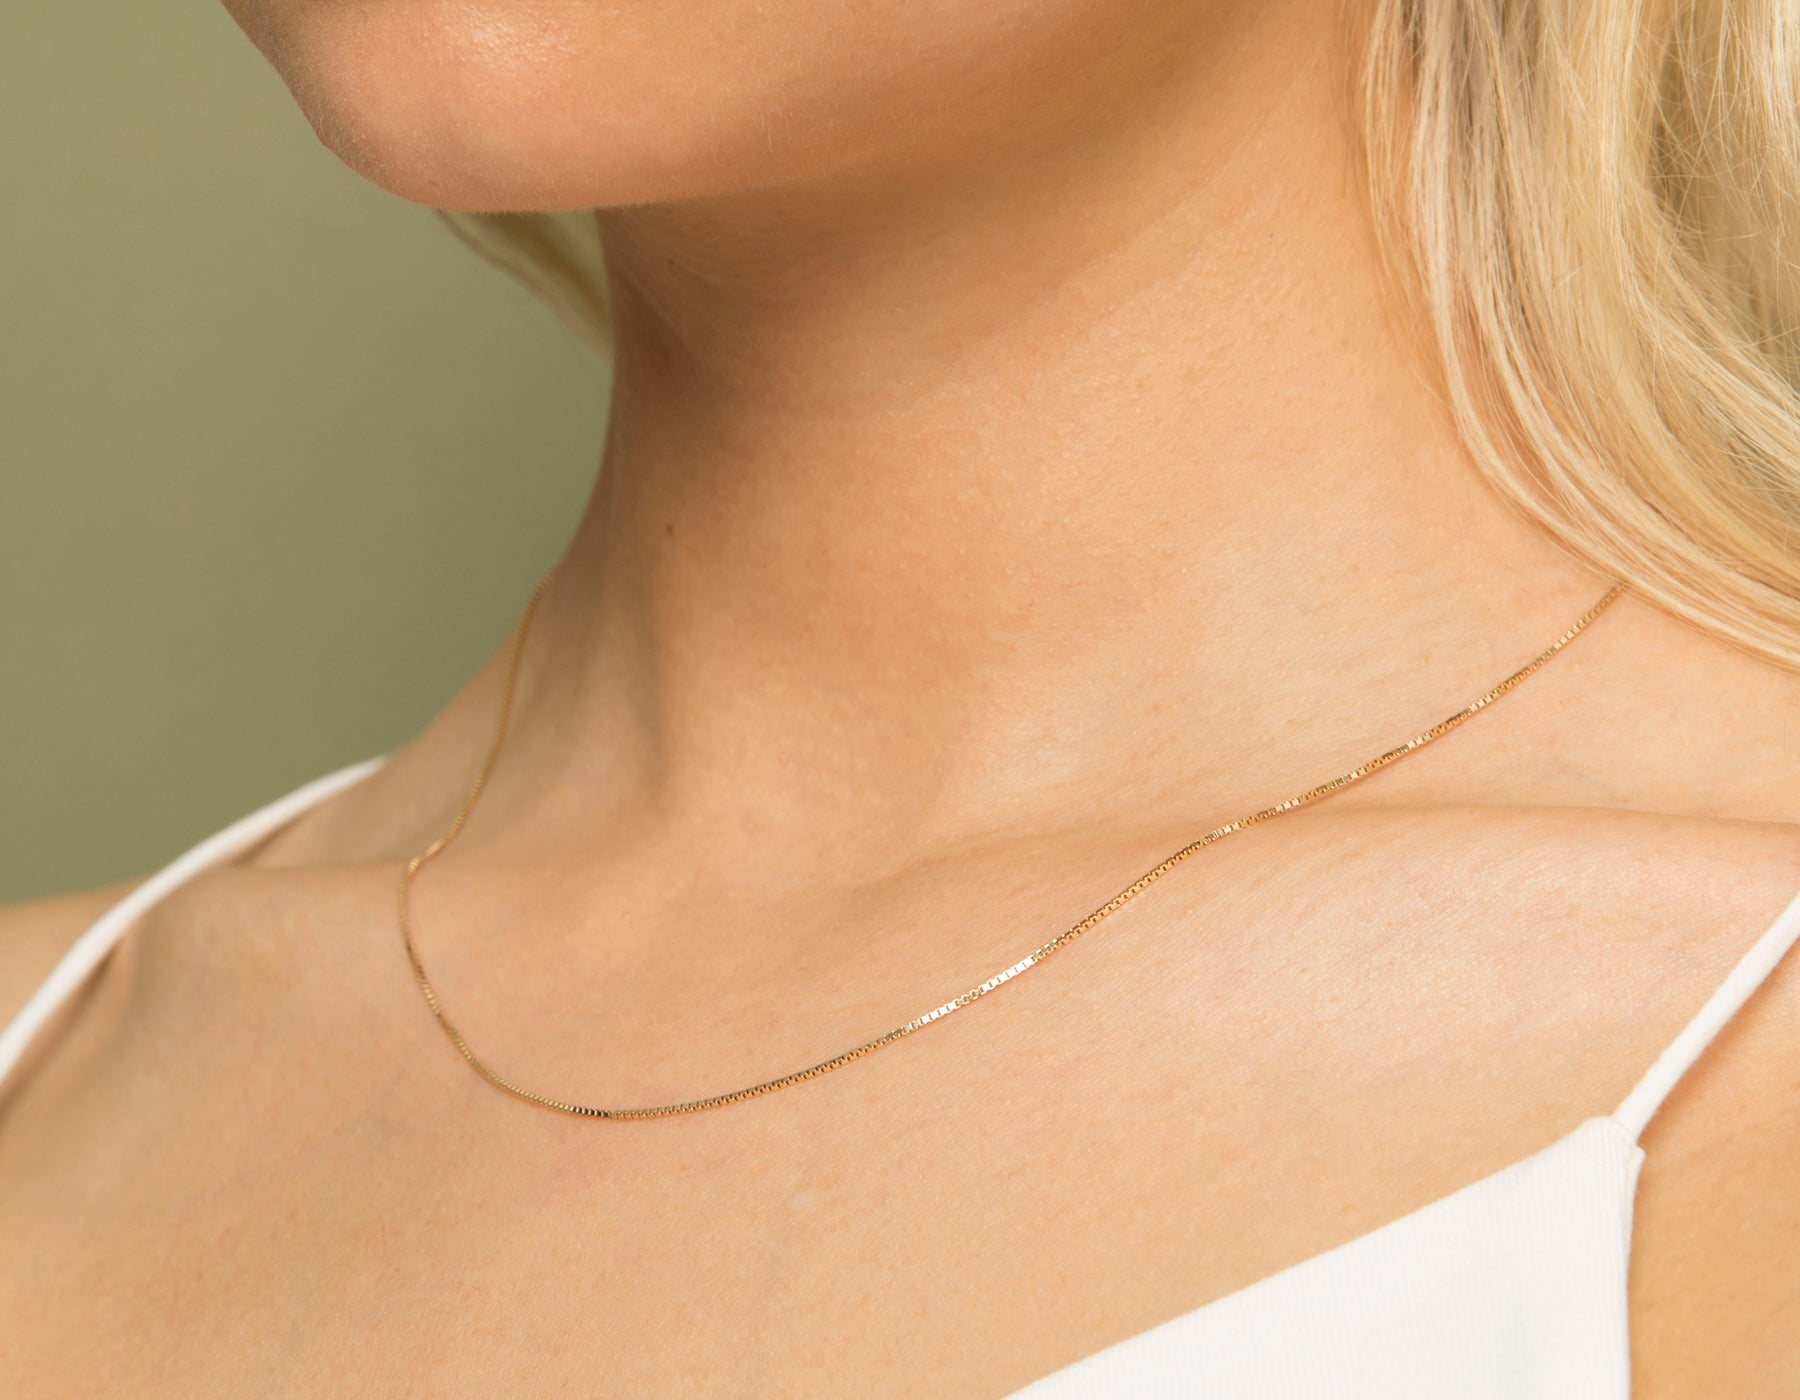 Model wearing Vrai 14k solid gold Silk Box Chain necklace diamond cut chain simple classic, 14K Rose Gold